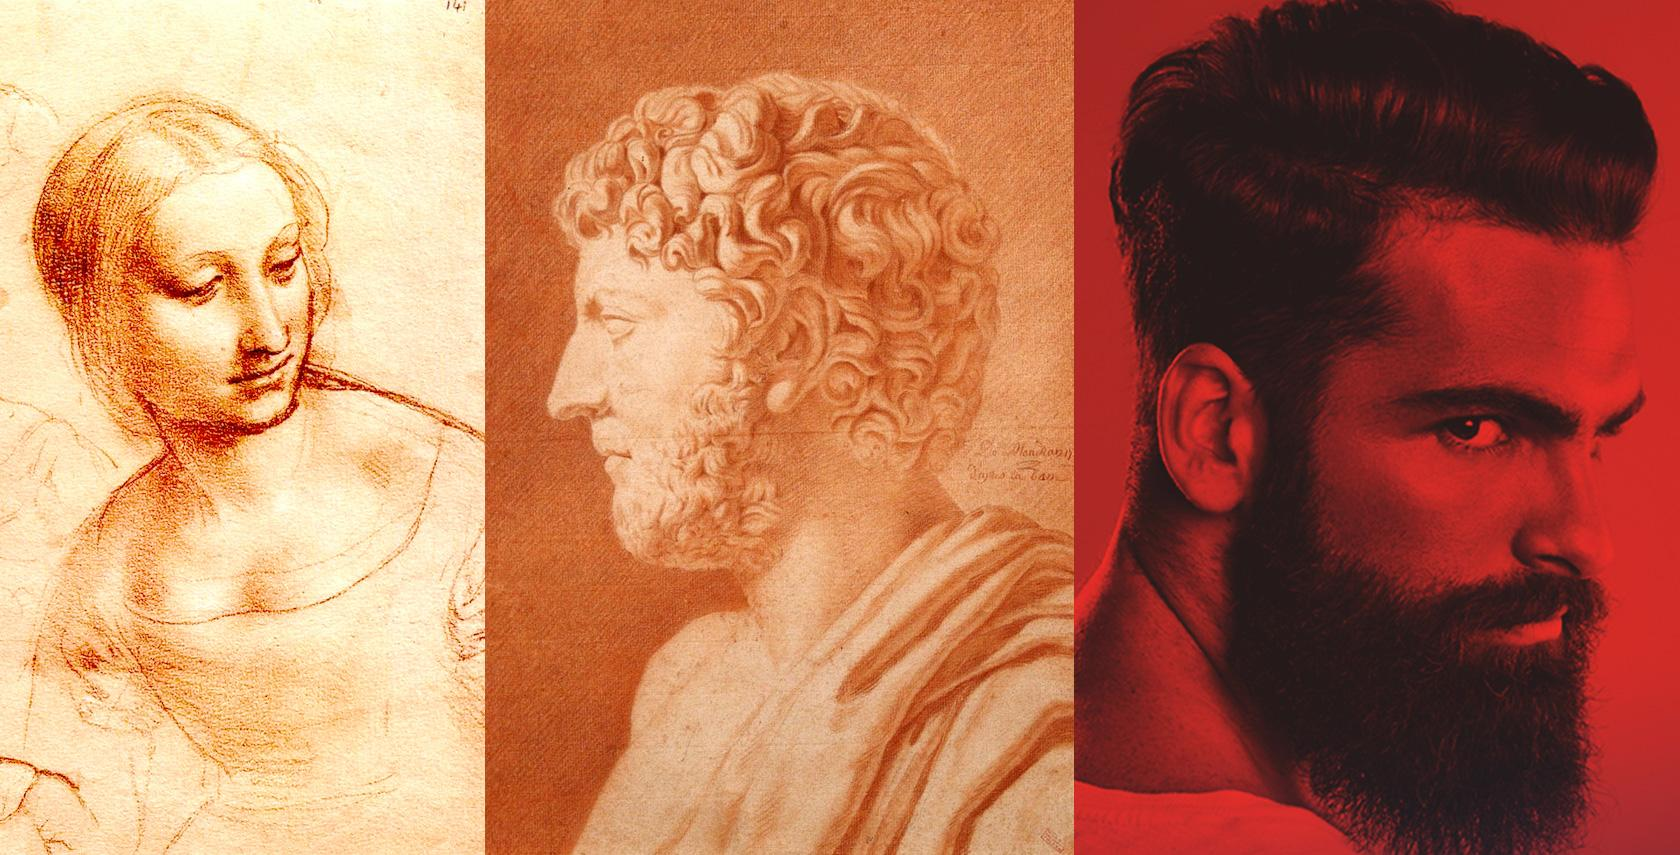 duotone drawings using sanguine - red chalk on paper